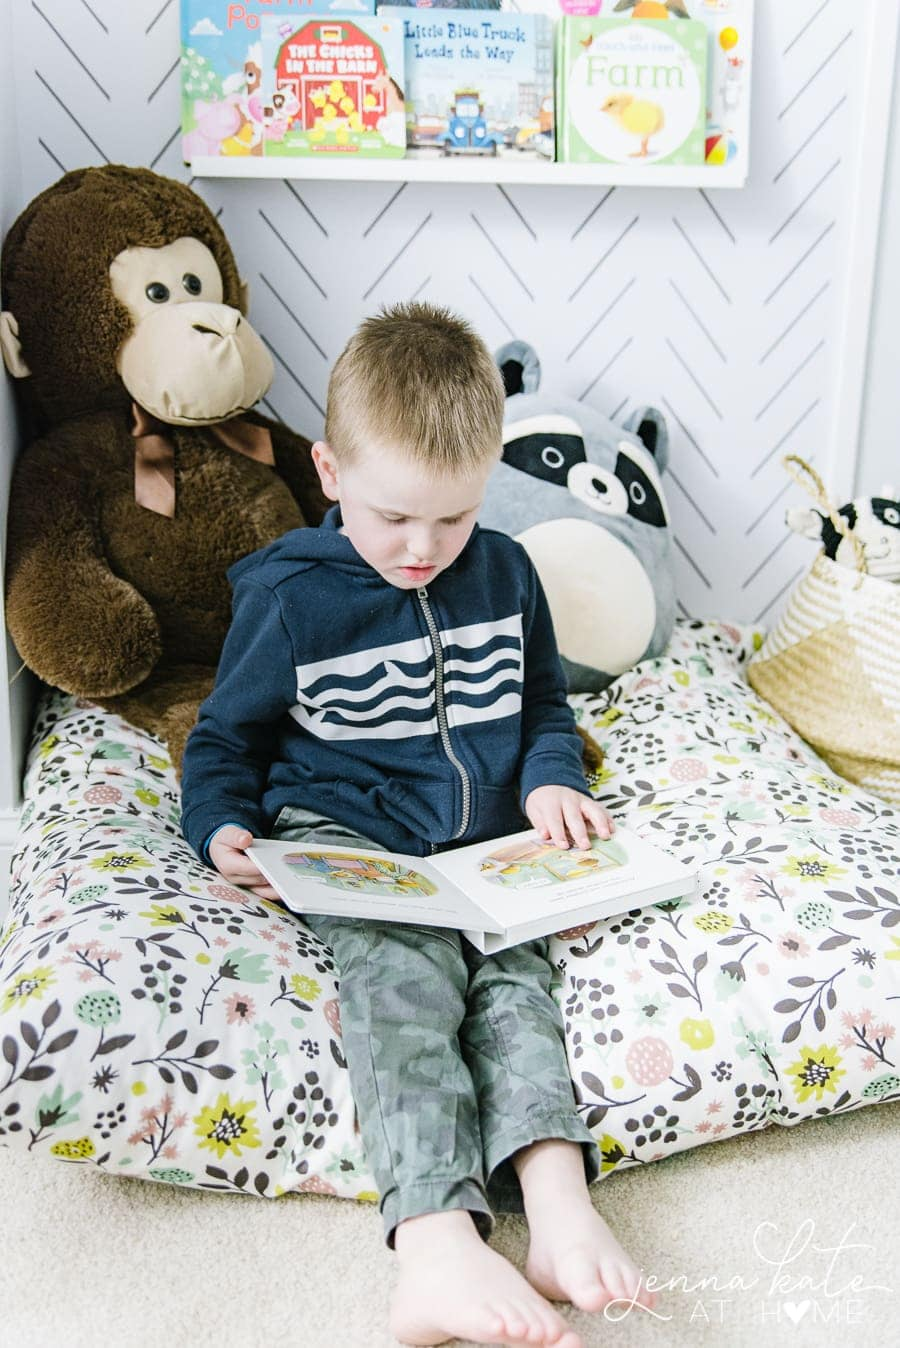 Reading corner ideas for a toddler